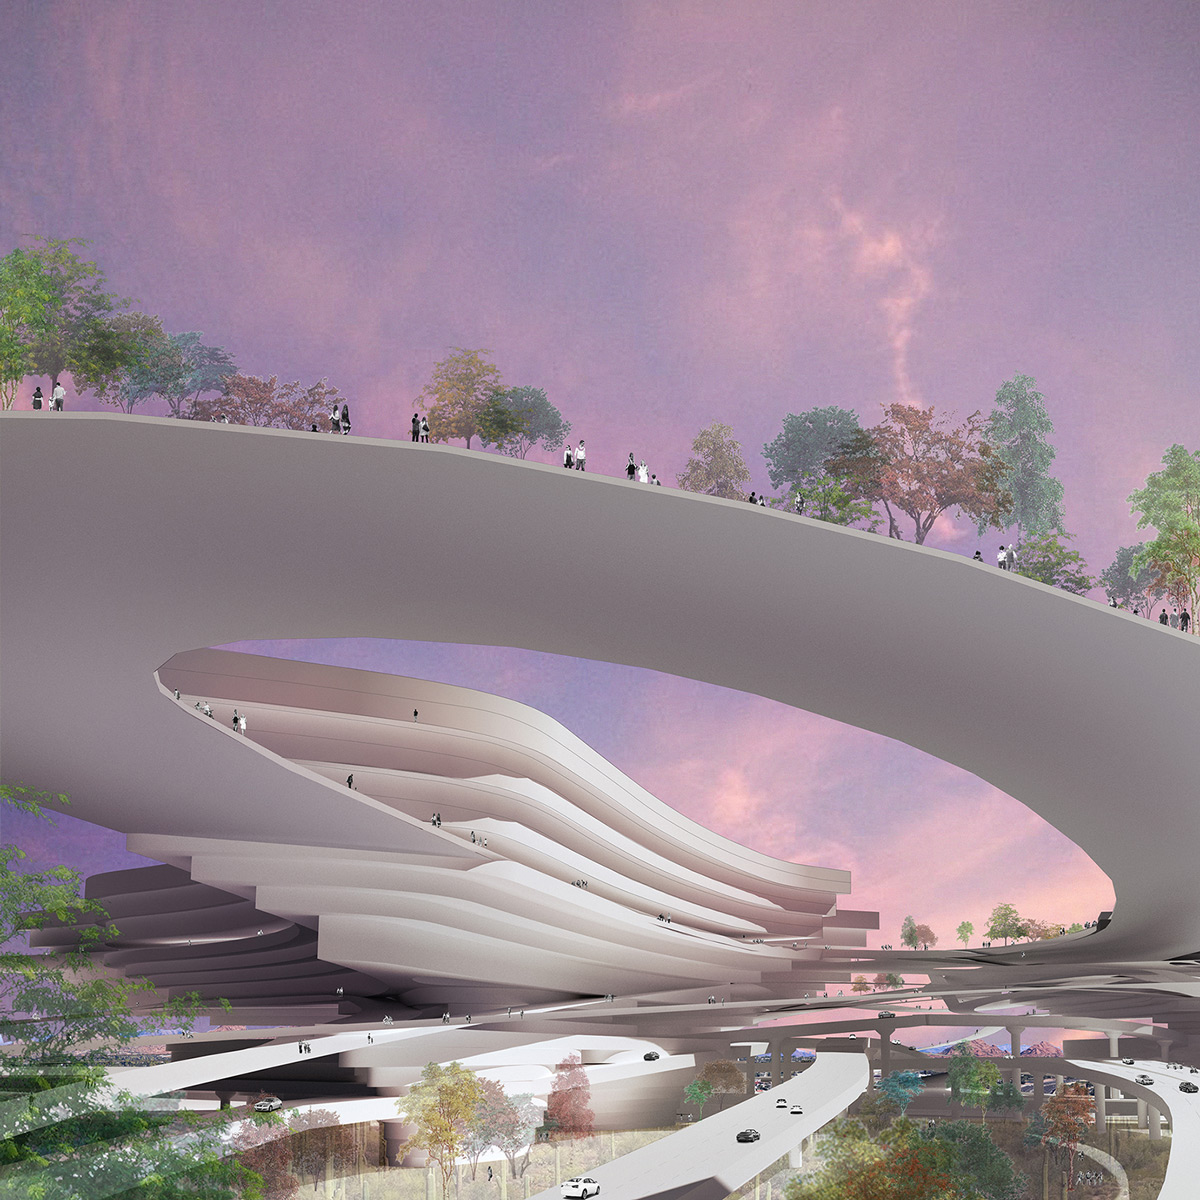 Perspective image proposing housing infrastructure above the highway interchanges of Phoenix by student Genevieve Miller